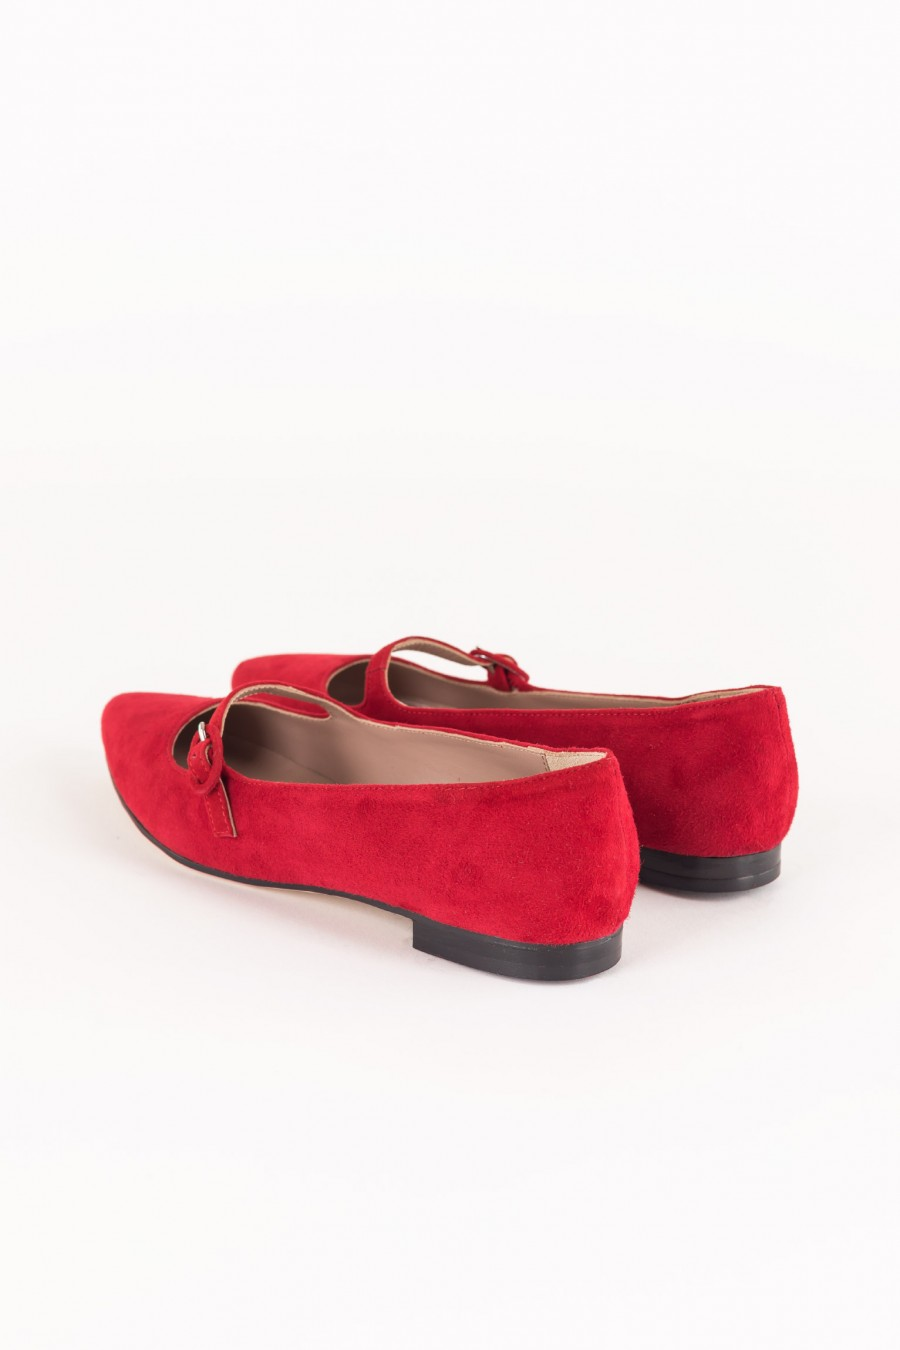 Red suede pointy flats with buckle